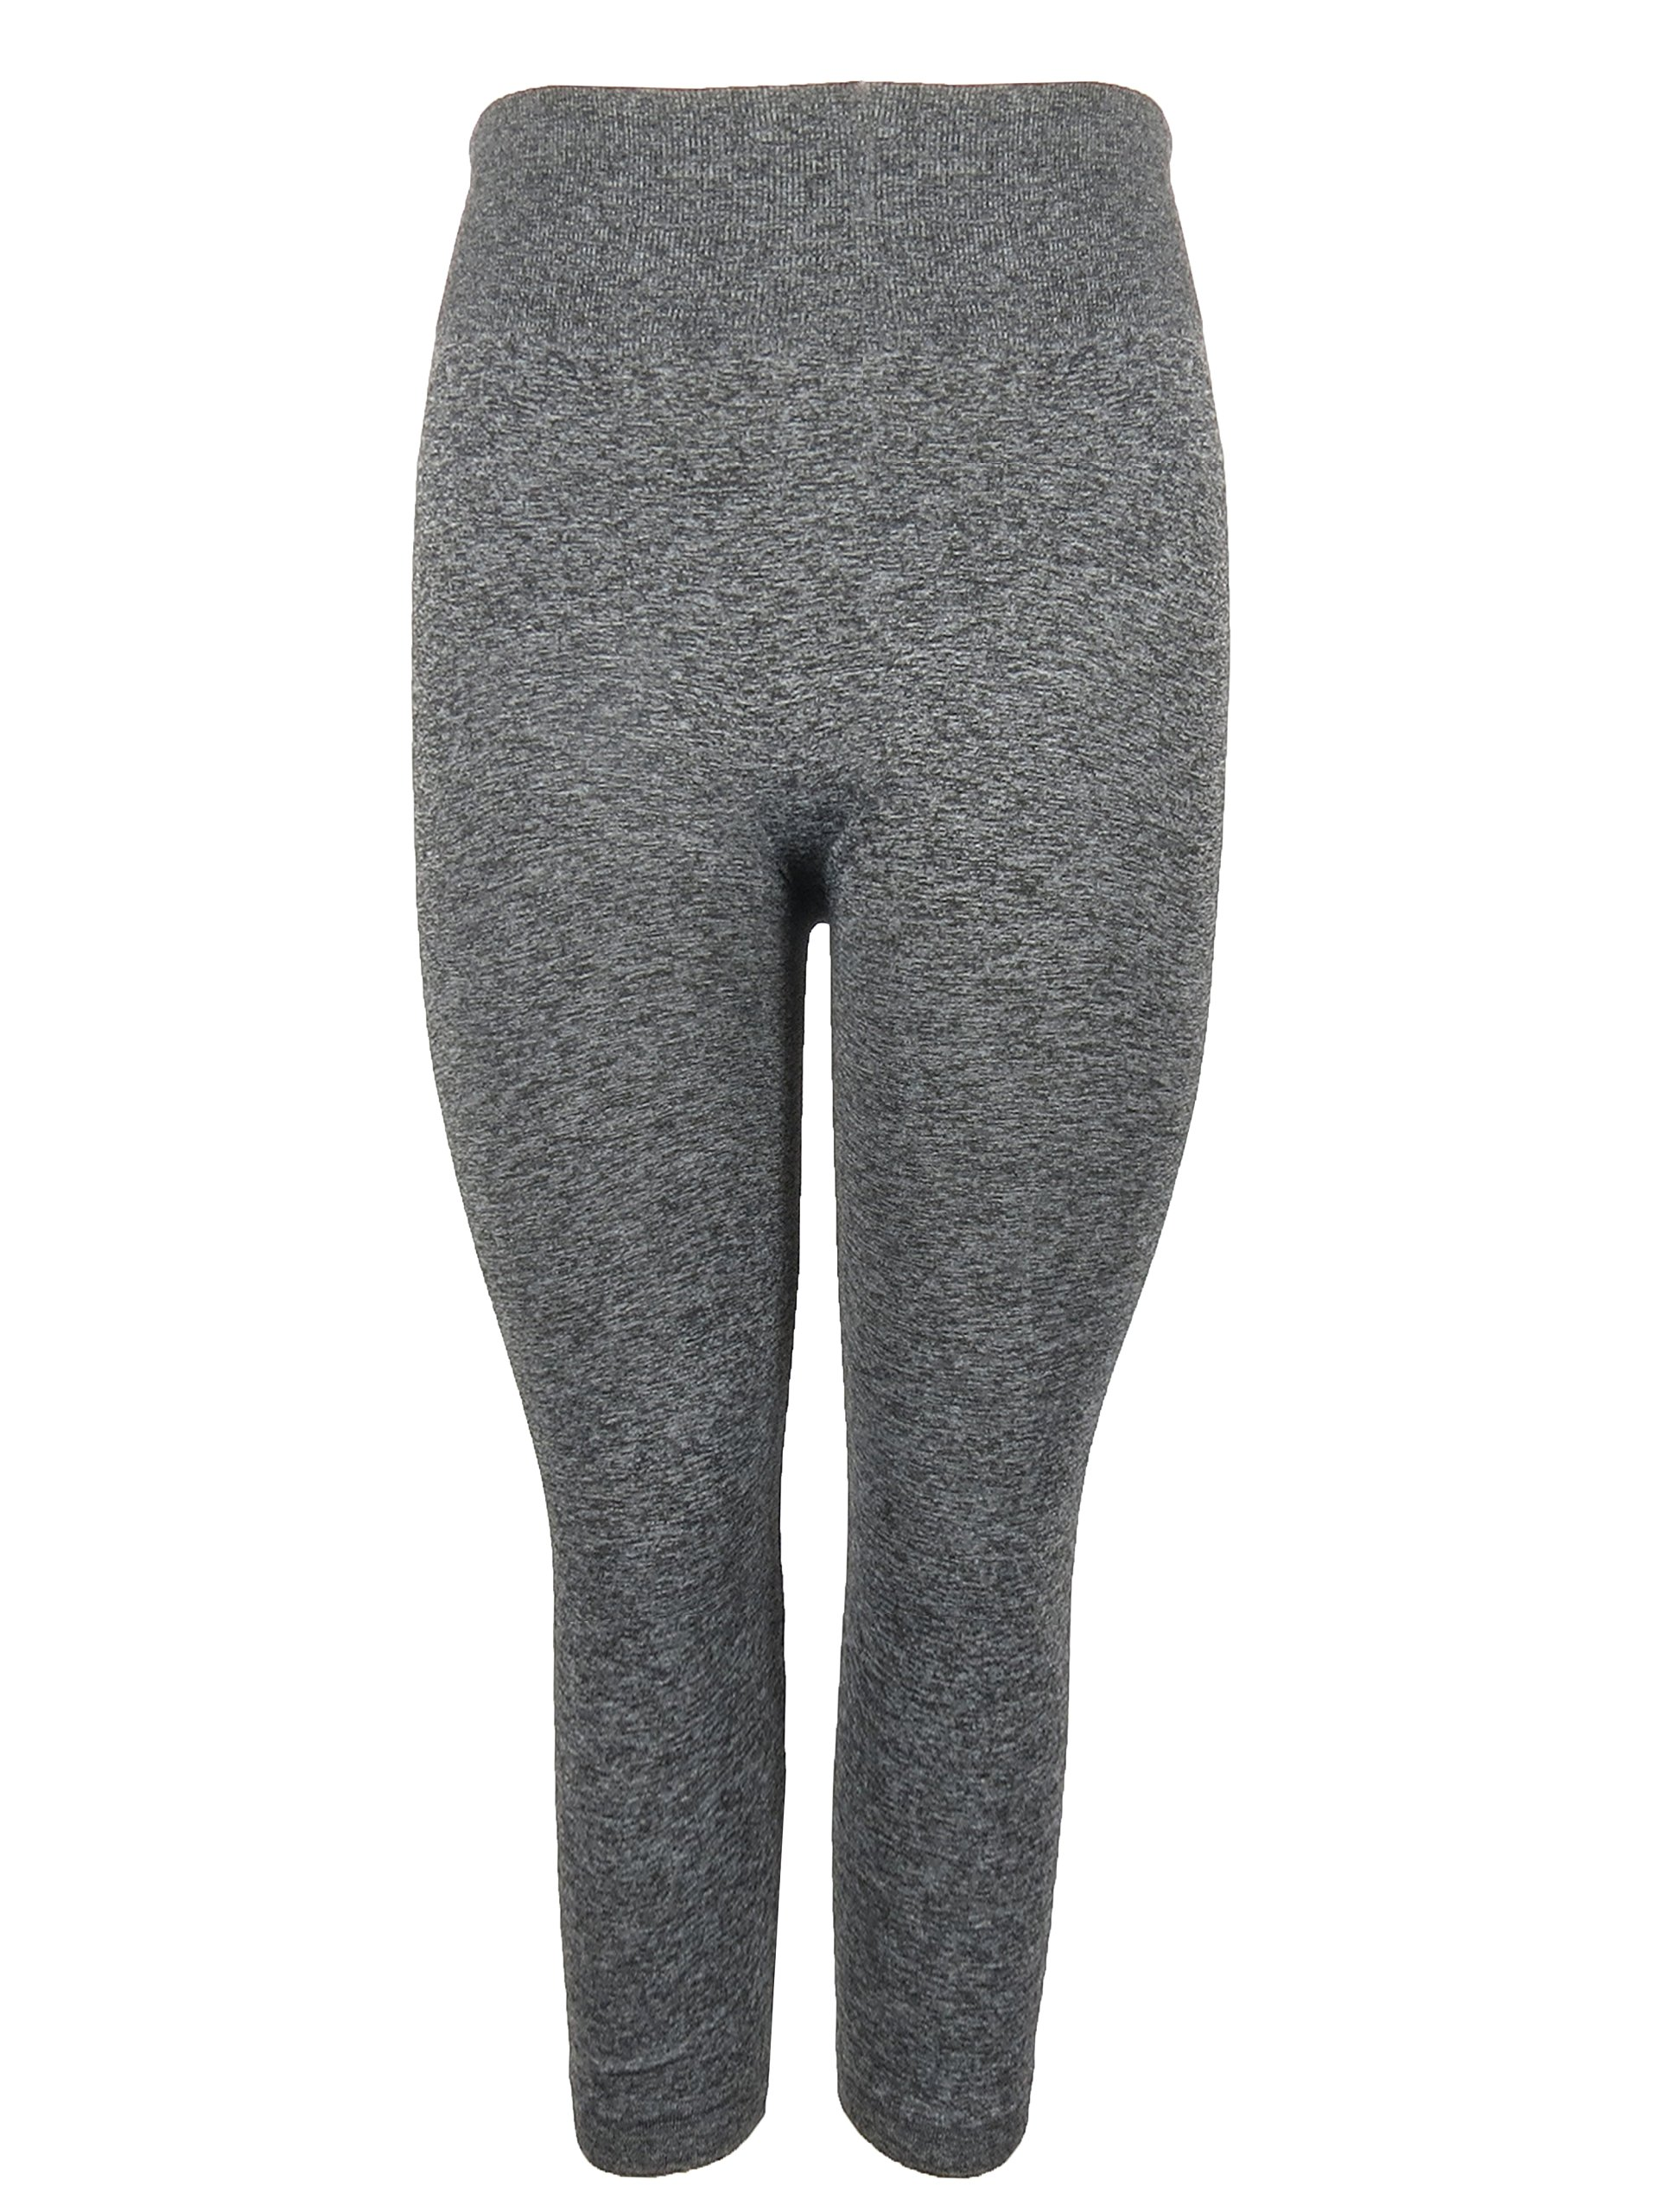 Crush Ladies Seamless Legging Size 3X - Marled Grey